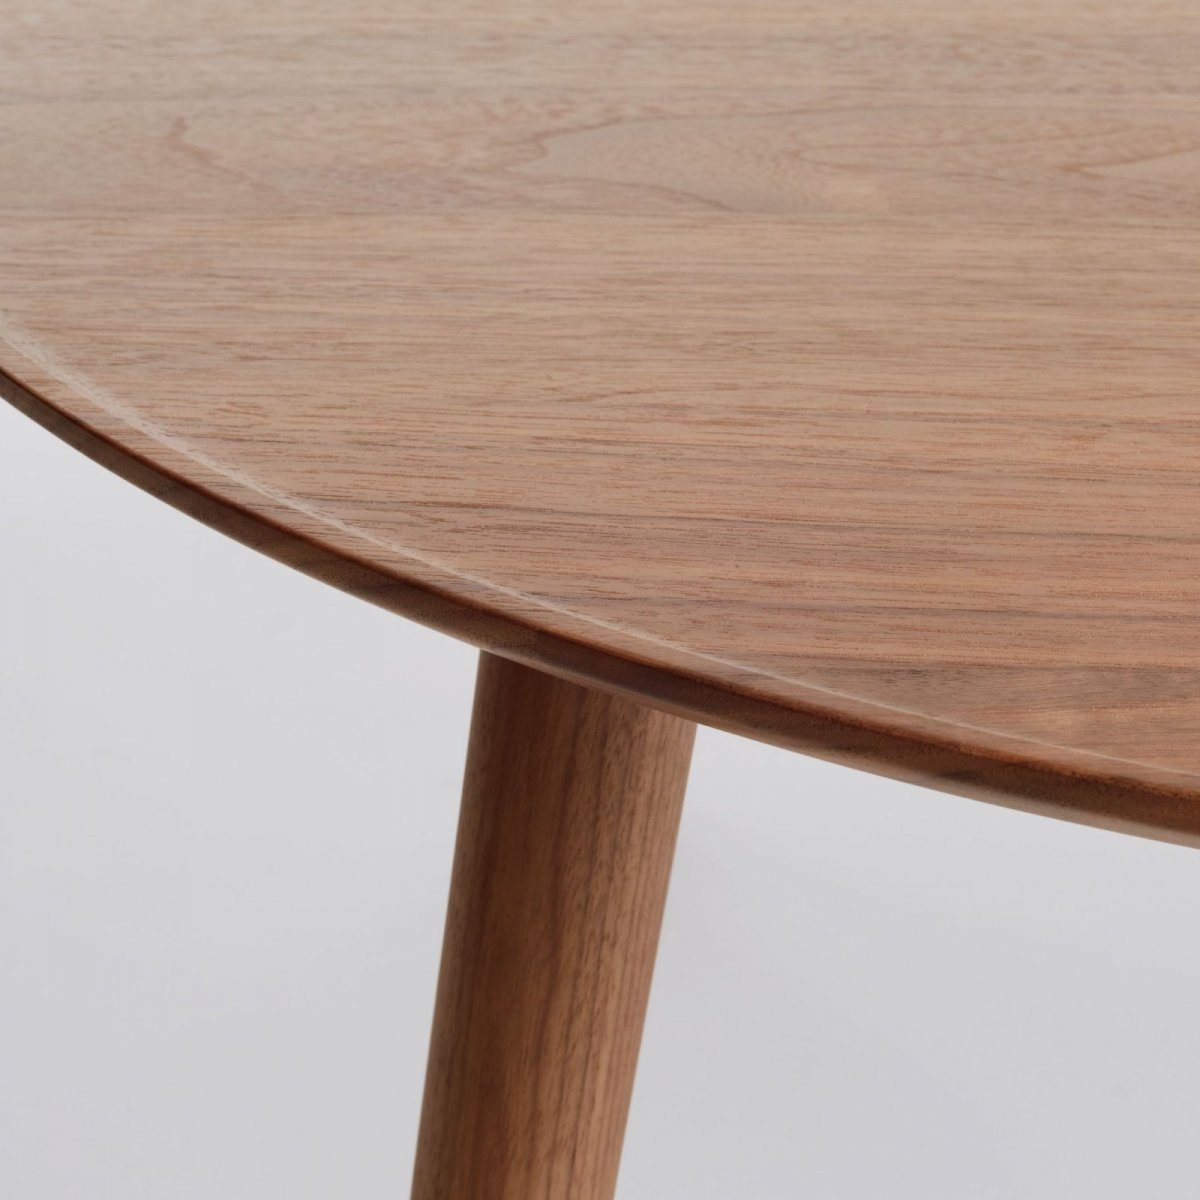 Edge Coffee Table, detail.